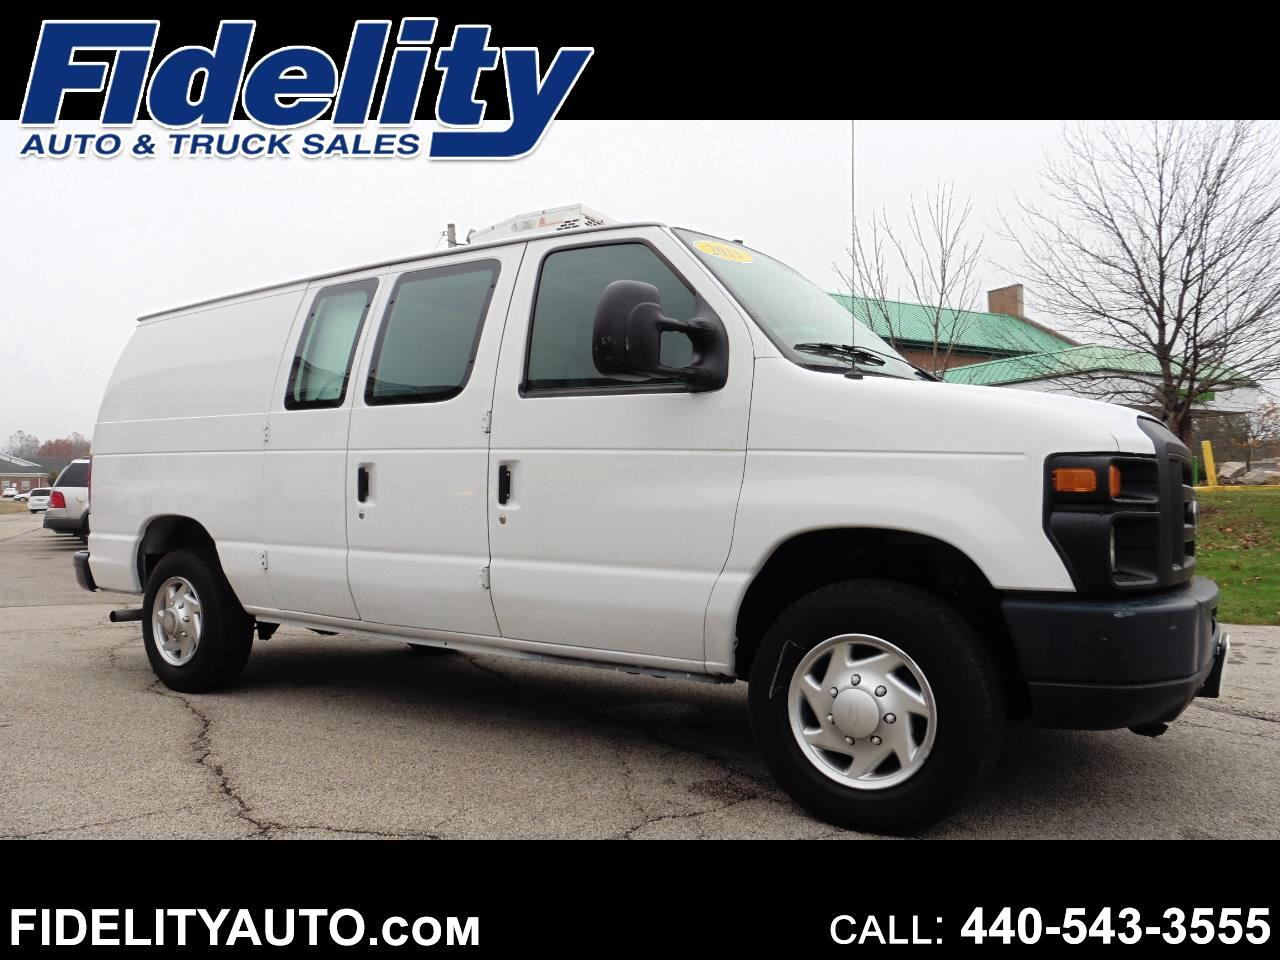 2011 Ford Econoline E-150 Refridgerated Cargo Van